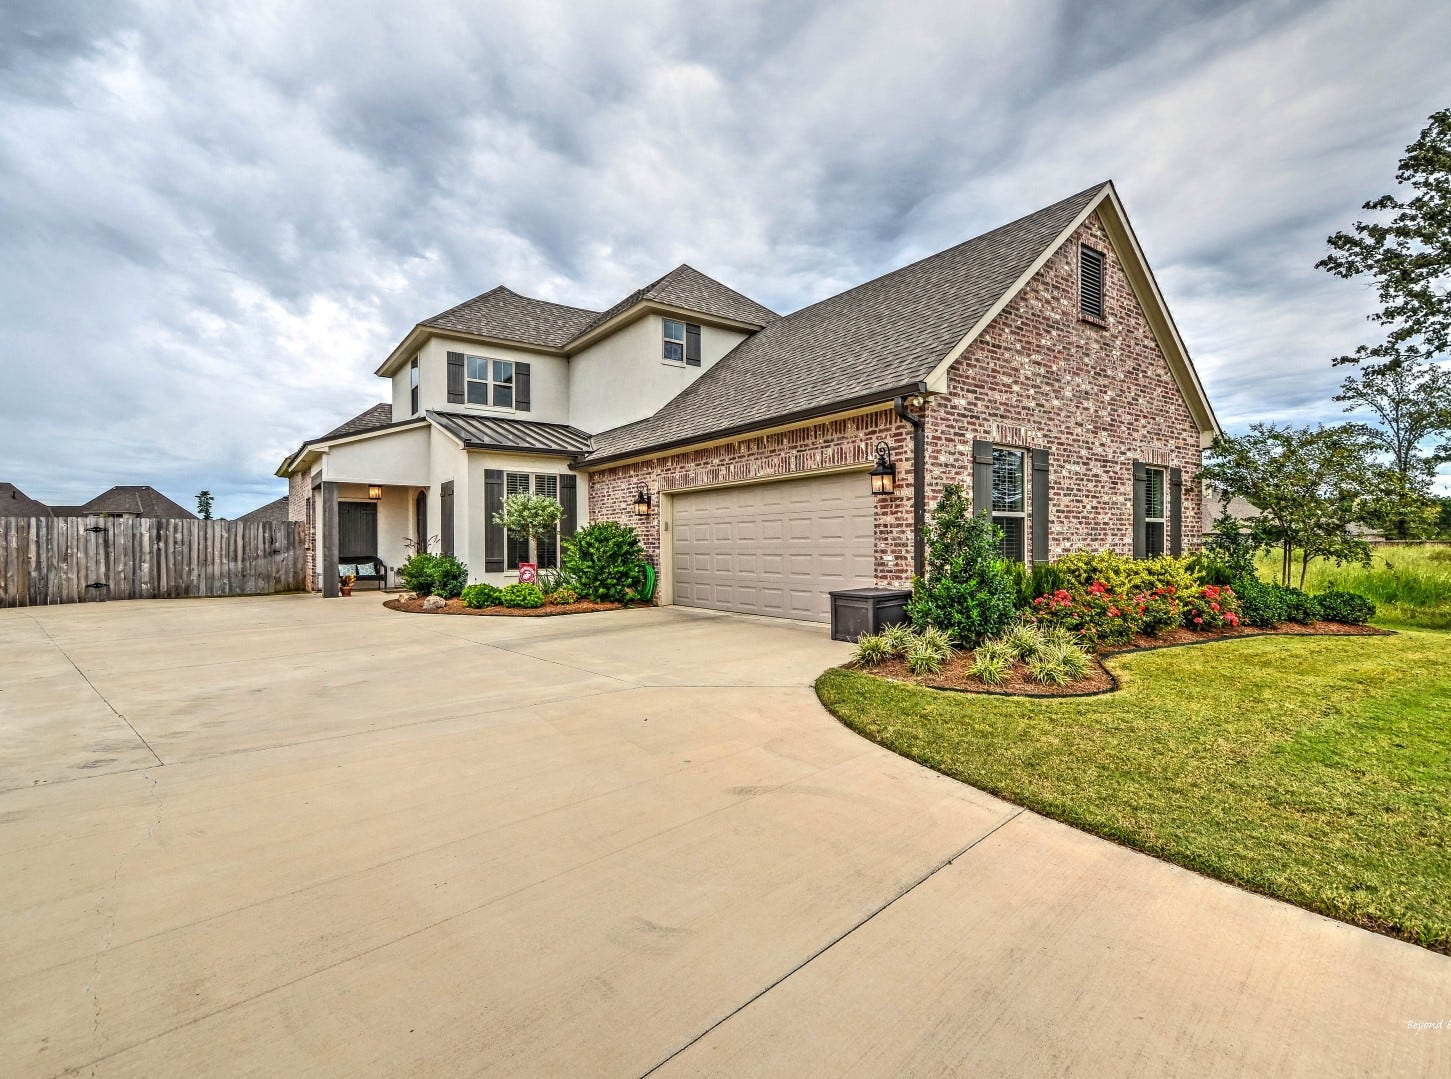 13 Turtle Creek Drive,   Benton  Price: $325,000  Details: 3 bedrooms, 3 bathrooms, 2,189 square feet  Special features: Custom home in Turtle Creek Subdivision with large fully fenced yard.  Contact: Chris Acosta, 286-0105